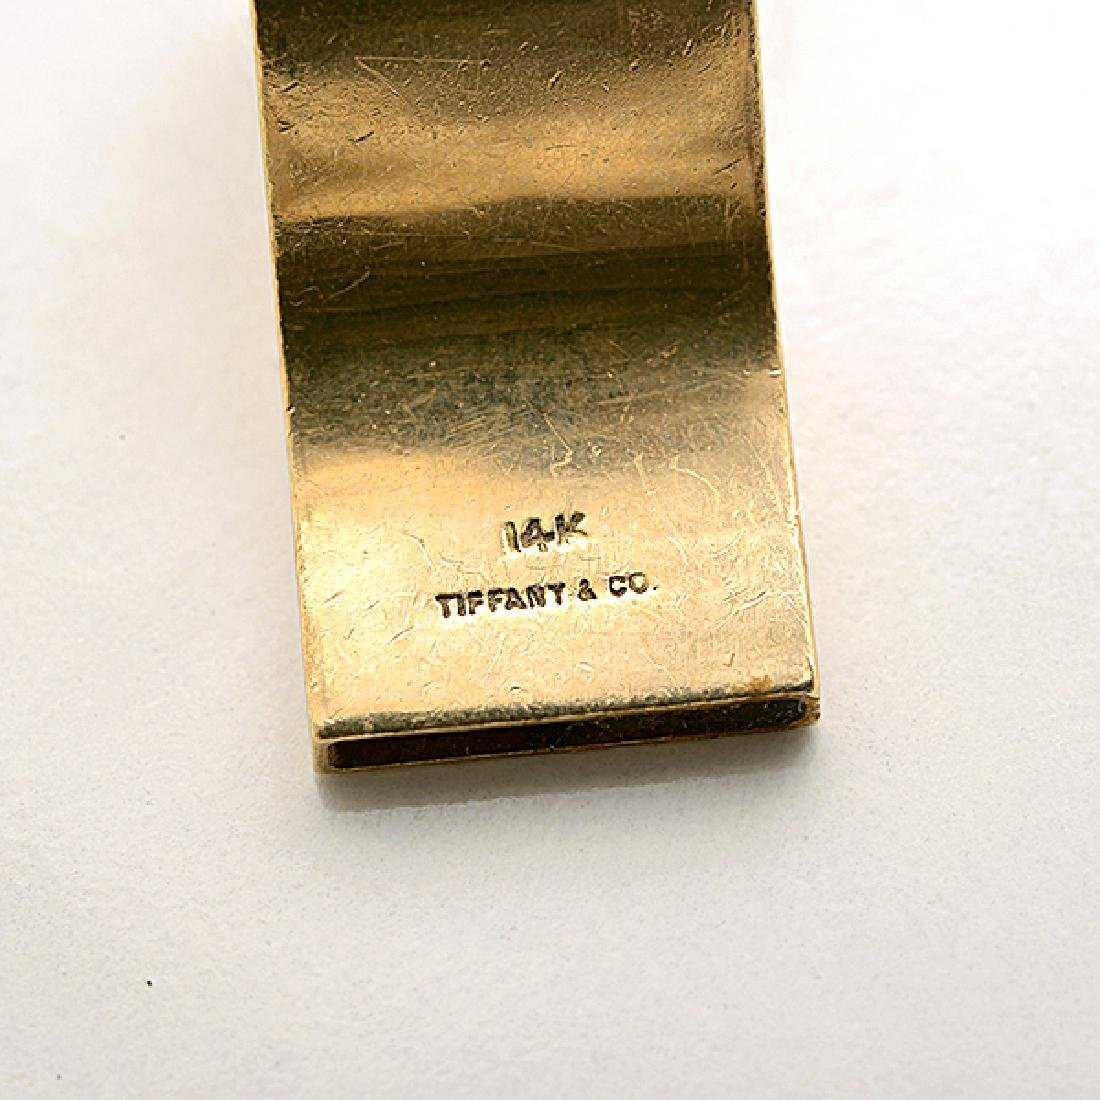 Tiffany & Co. 14k Yellow Gold Whistle Pendant Necklace. - 4